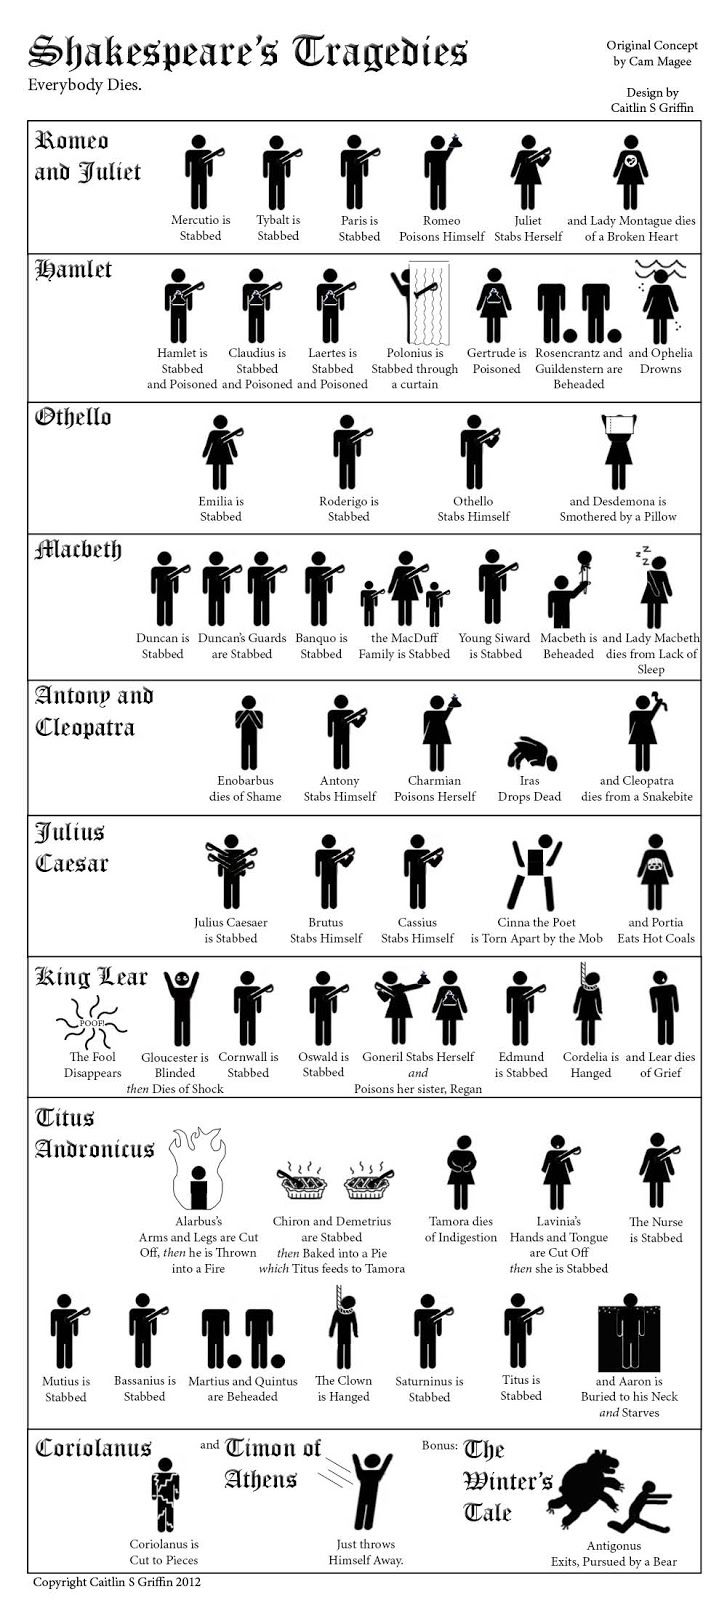 Shakespeare's Tragedies: everybody dies. The last is my favorite.